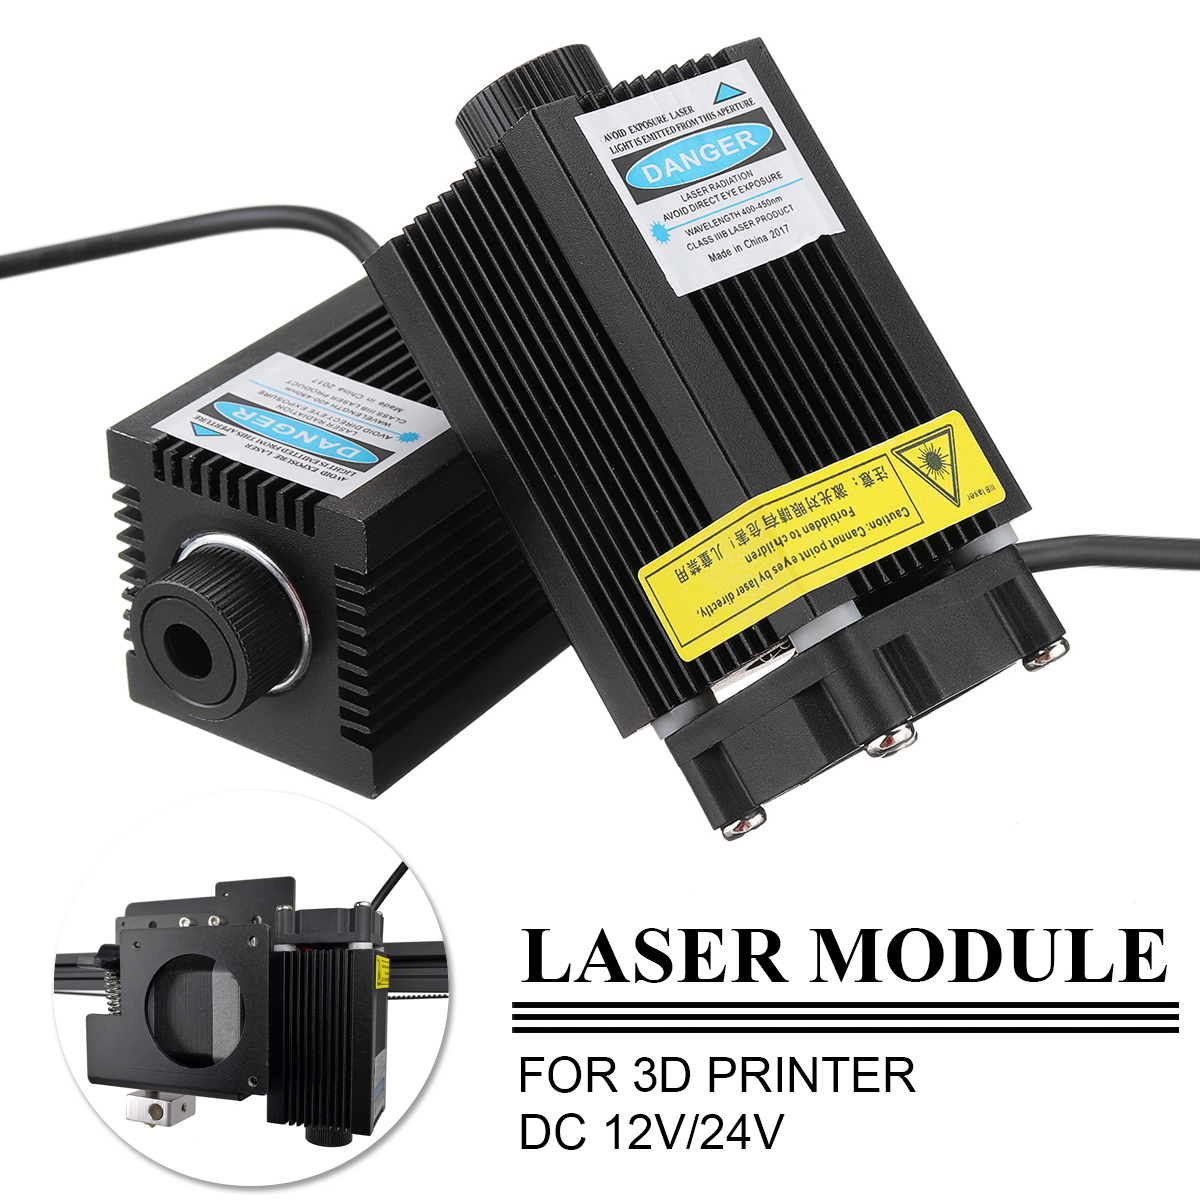 1Pcs 12V /24V 500mw 405NM 3D printer laser module laser engraving TTL module 500mw laser tube Laser module diode sun god totem beach throw